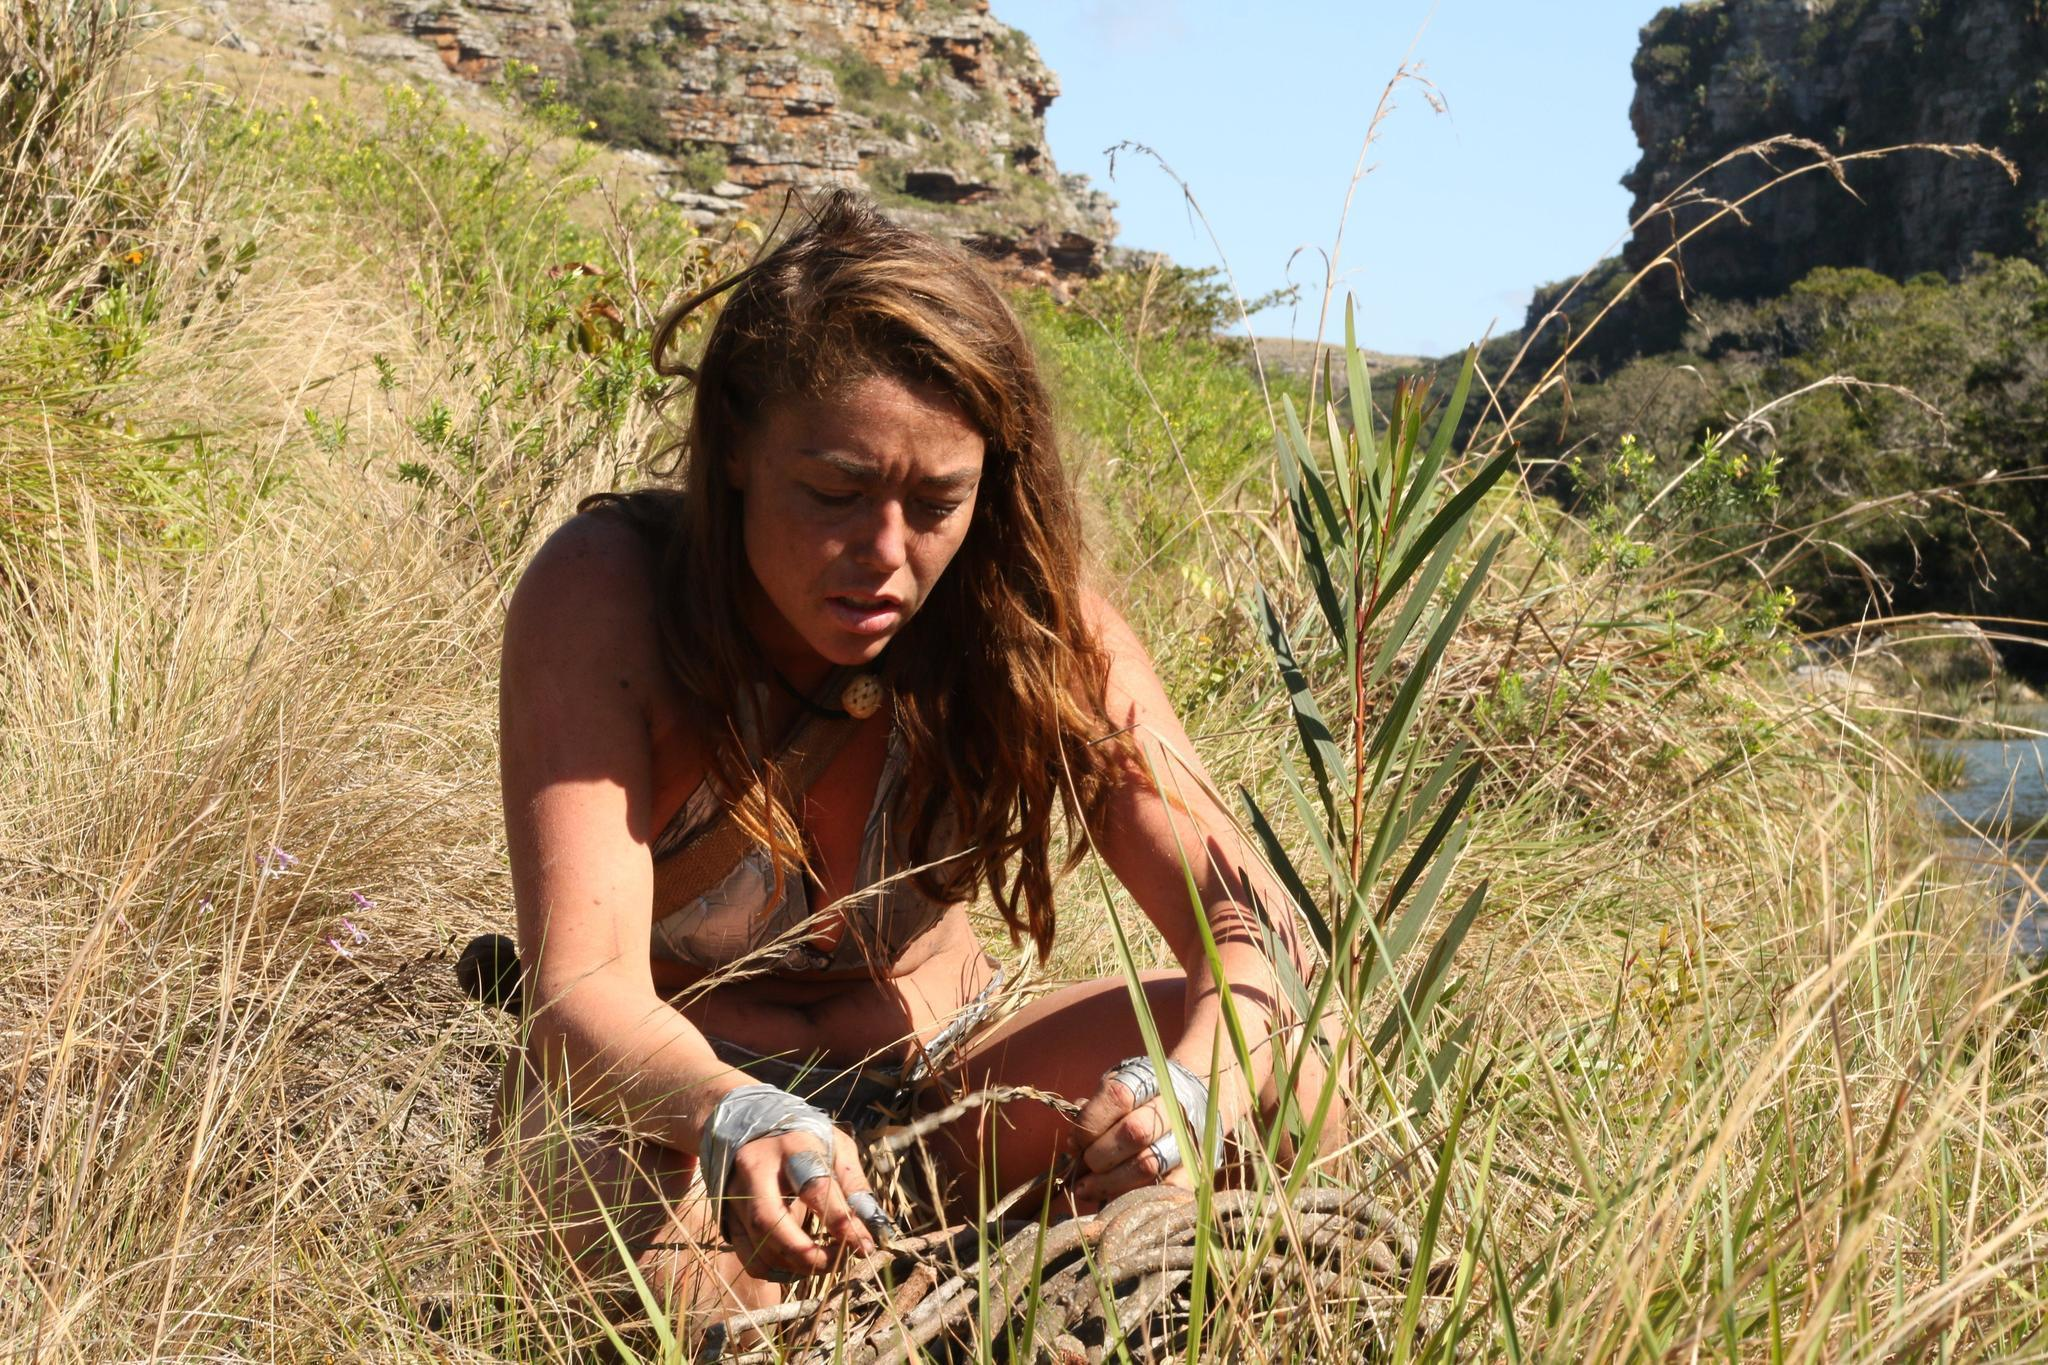 Women of naked and afraid images